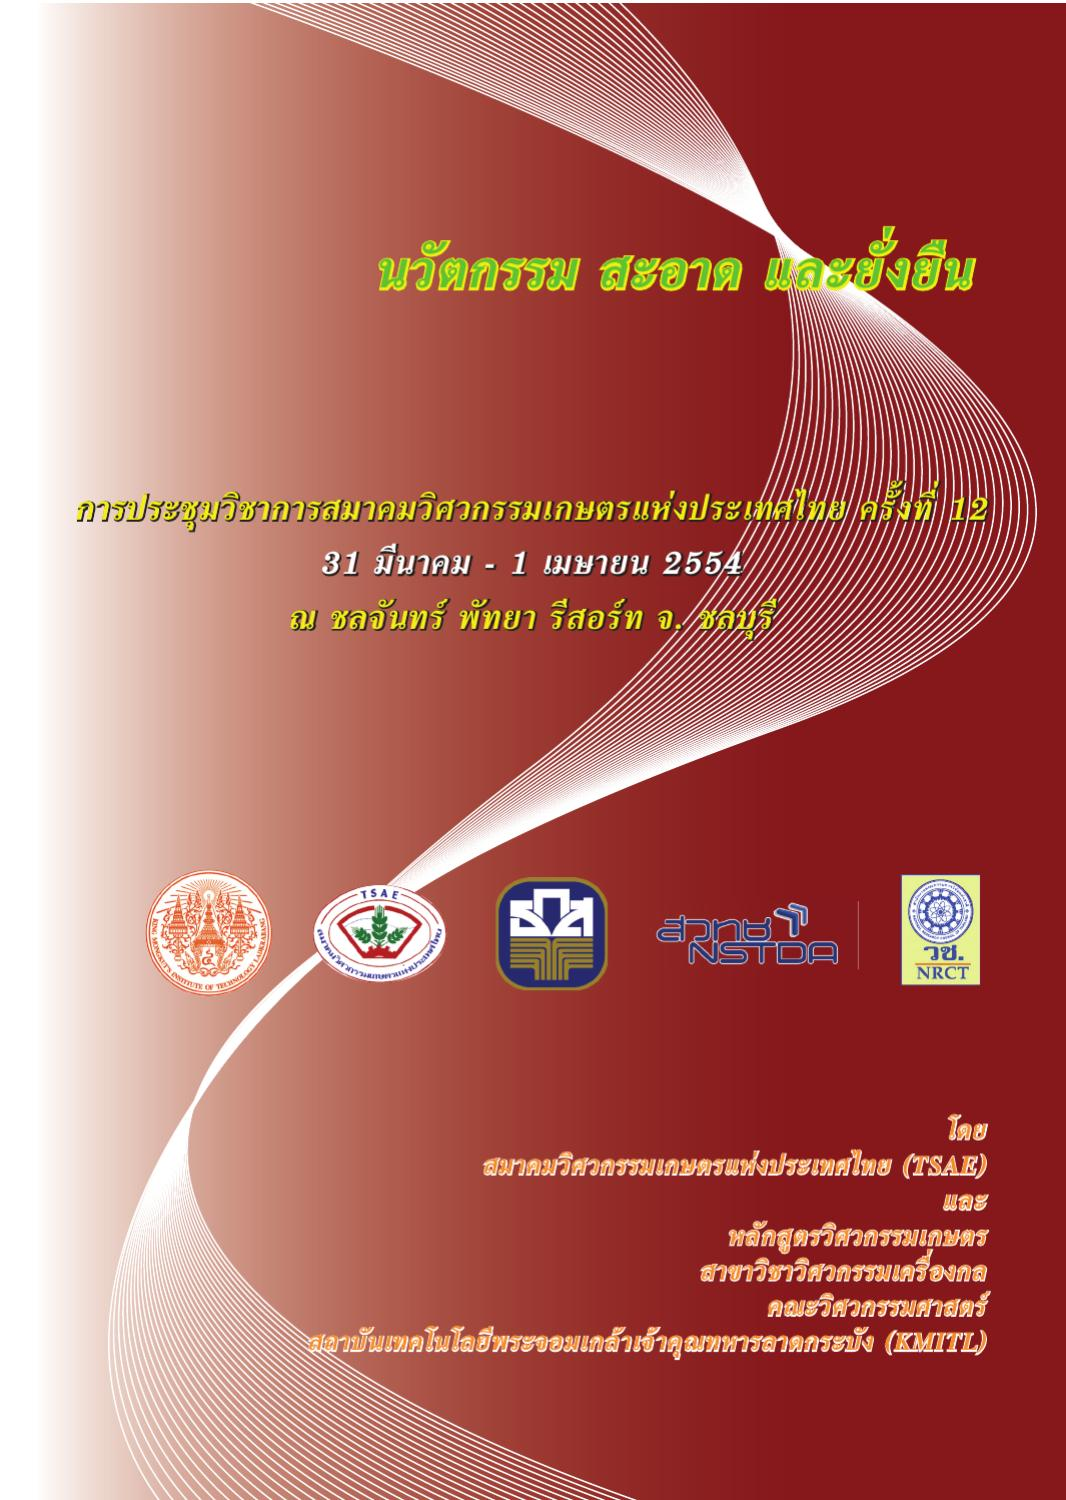 12th Annual TSAE Abstract (National) by สมาคมวิศวกรรมเกษตร on